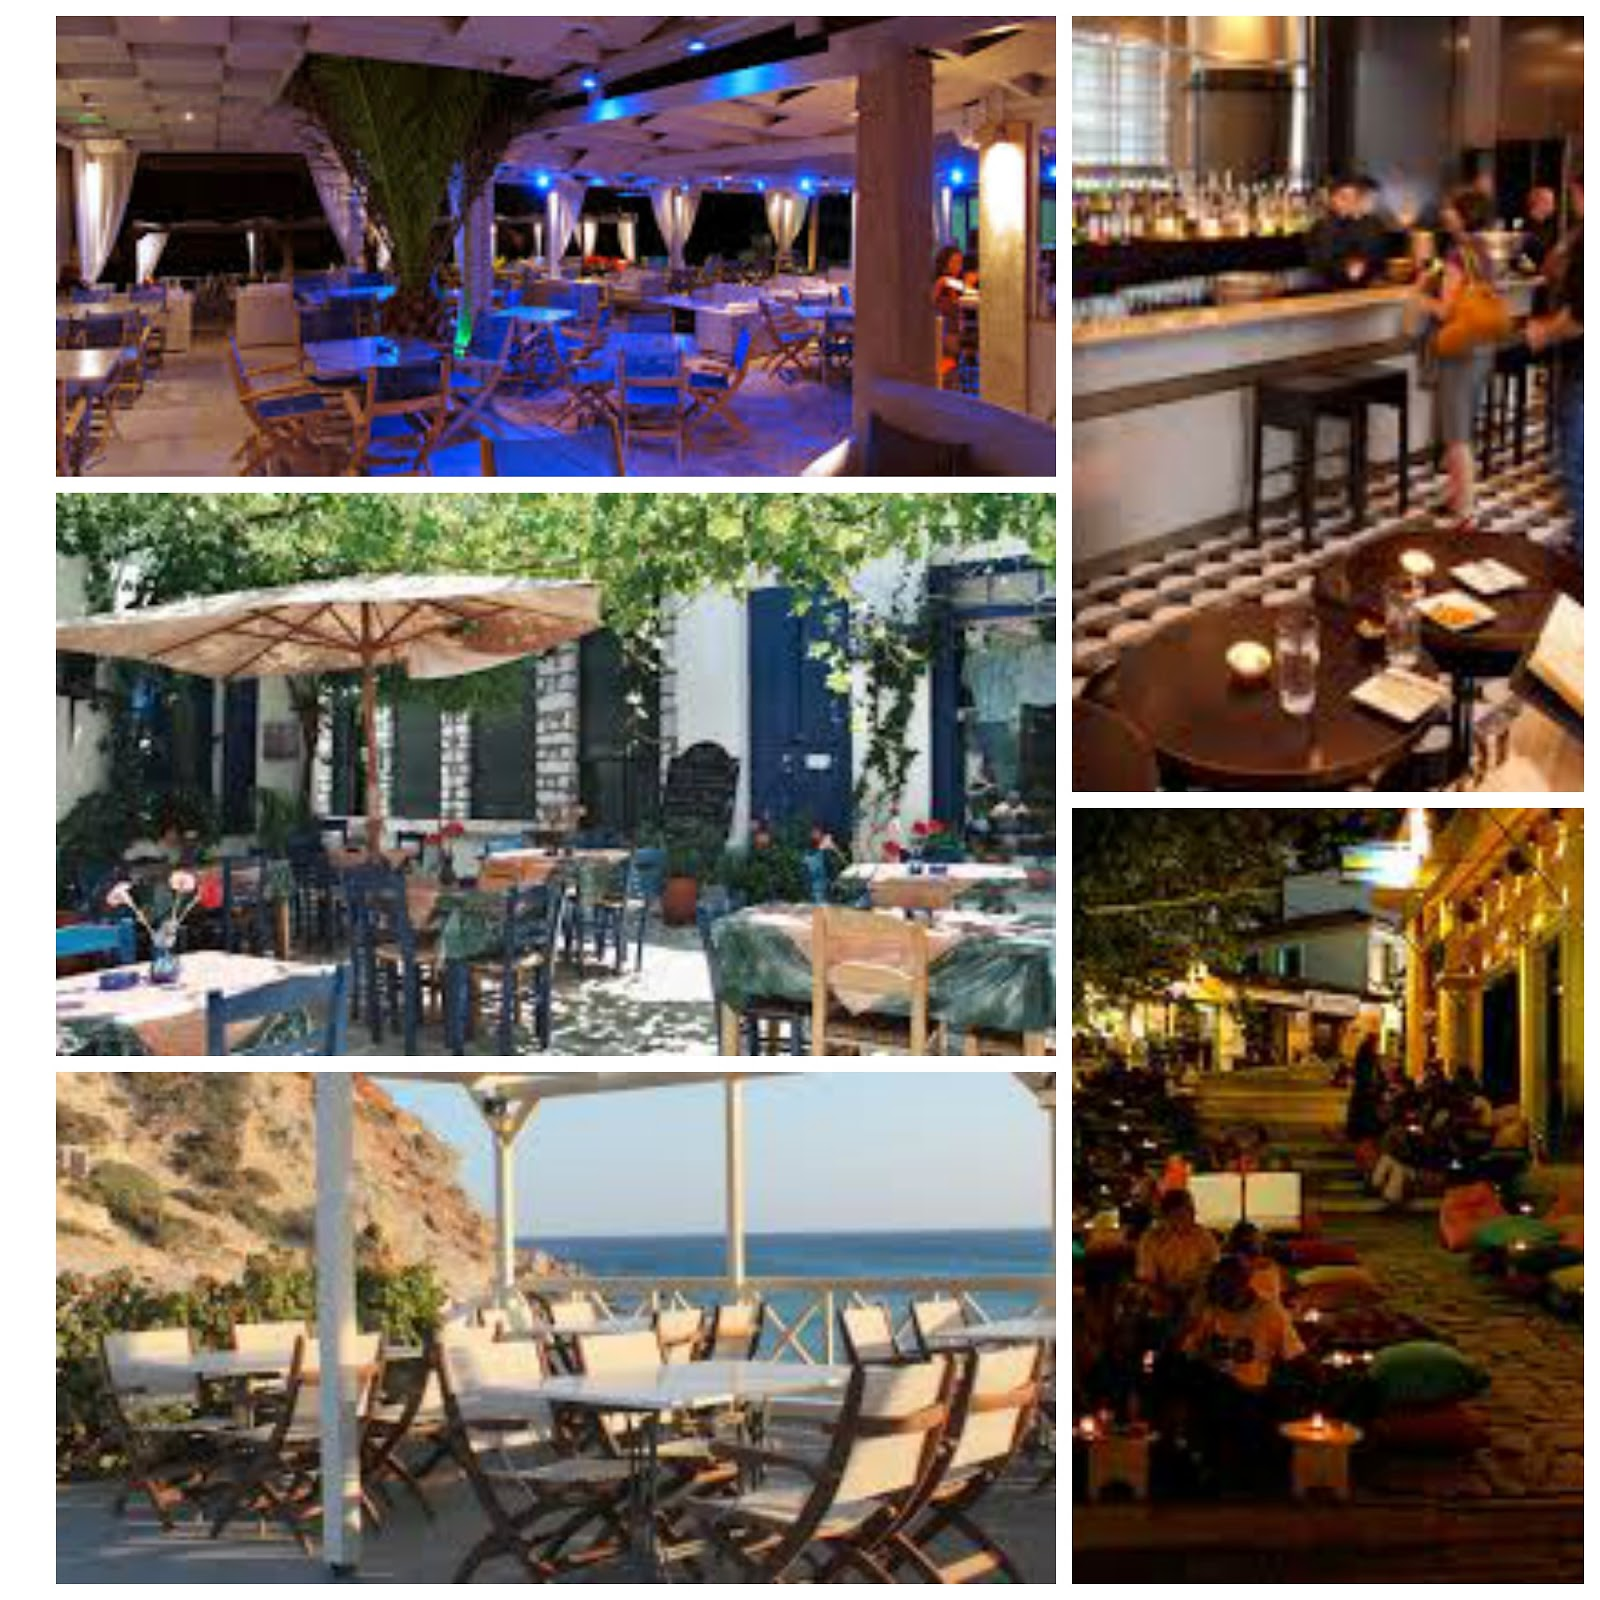 Eating and drinking in Greece.Pictures Courtesy of Google